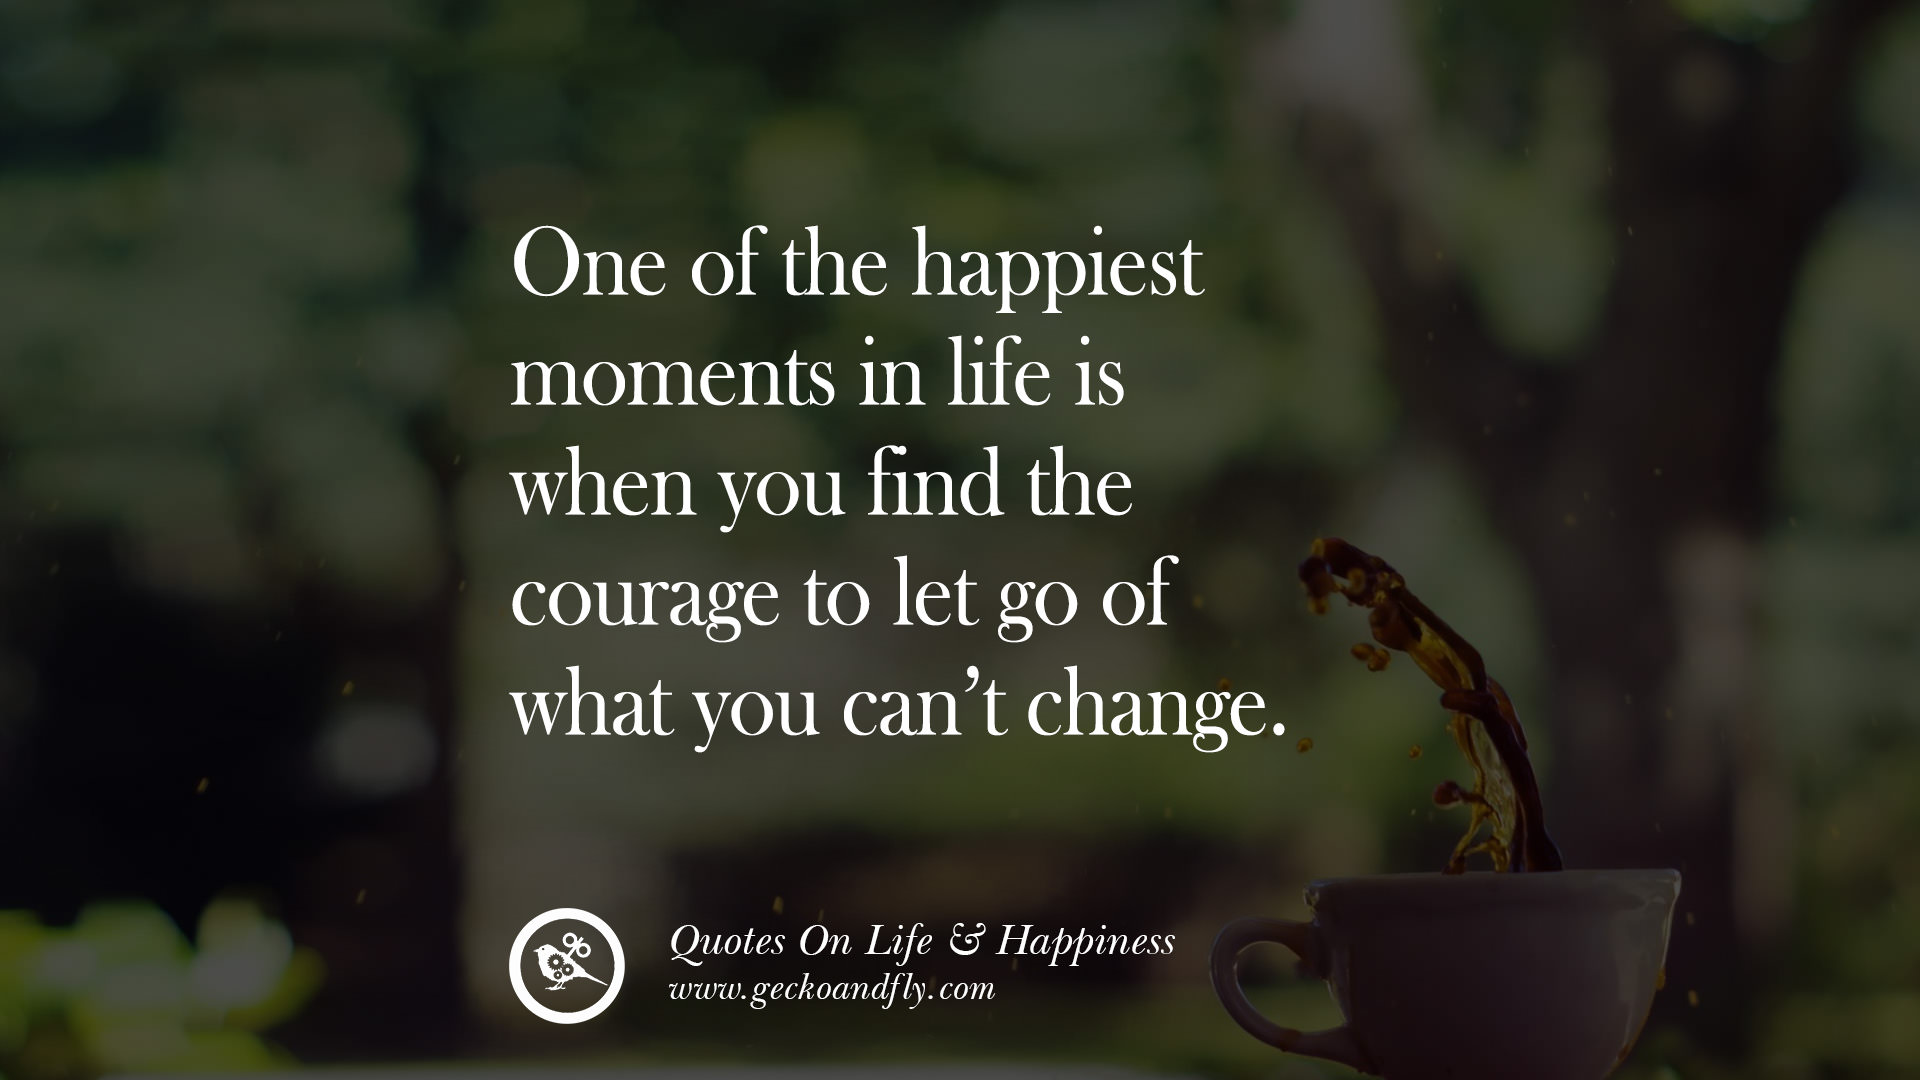 Life Changing Quotes About Love 16 Uplifting Quotes About Being Happy With Life Love Friends